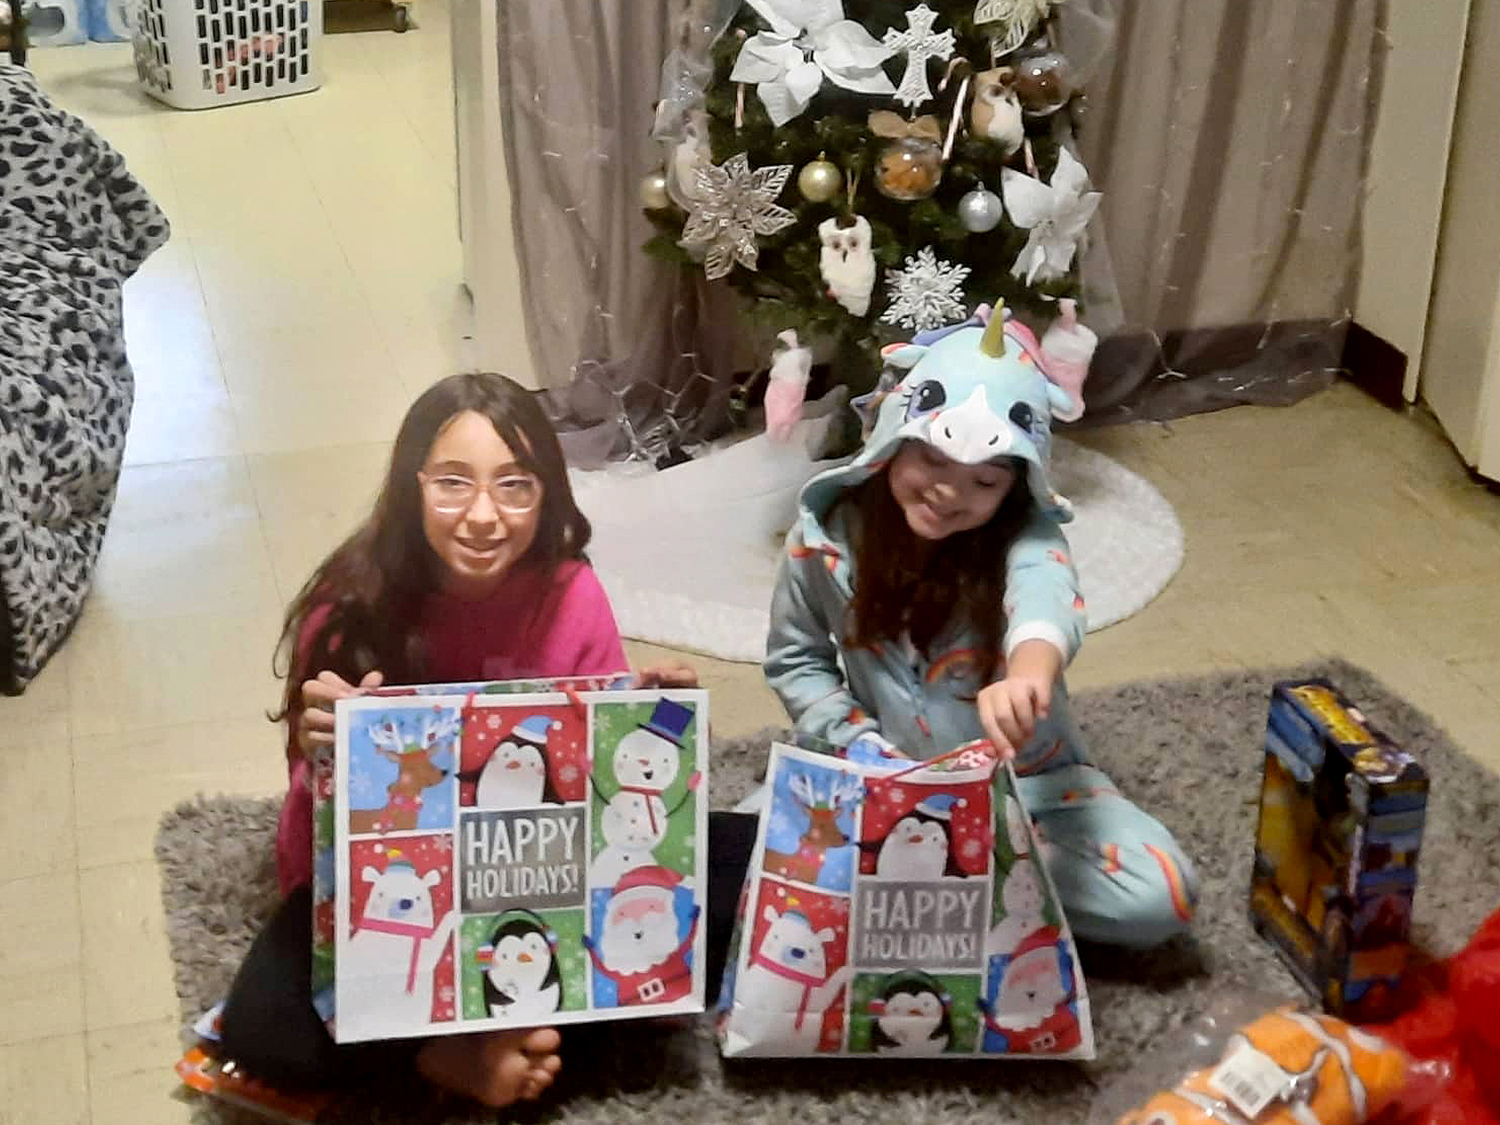 Children smiling, holding the gifts they received from Kidz N Coaches.